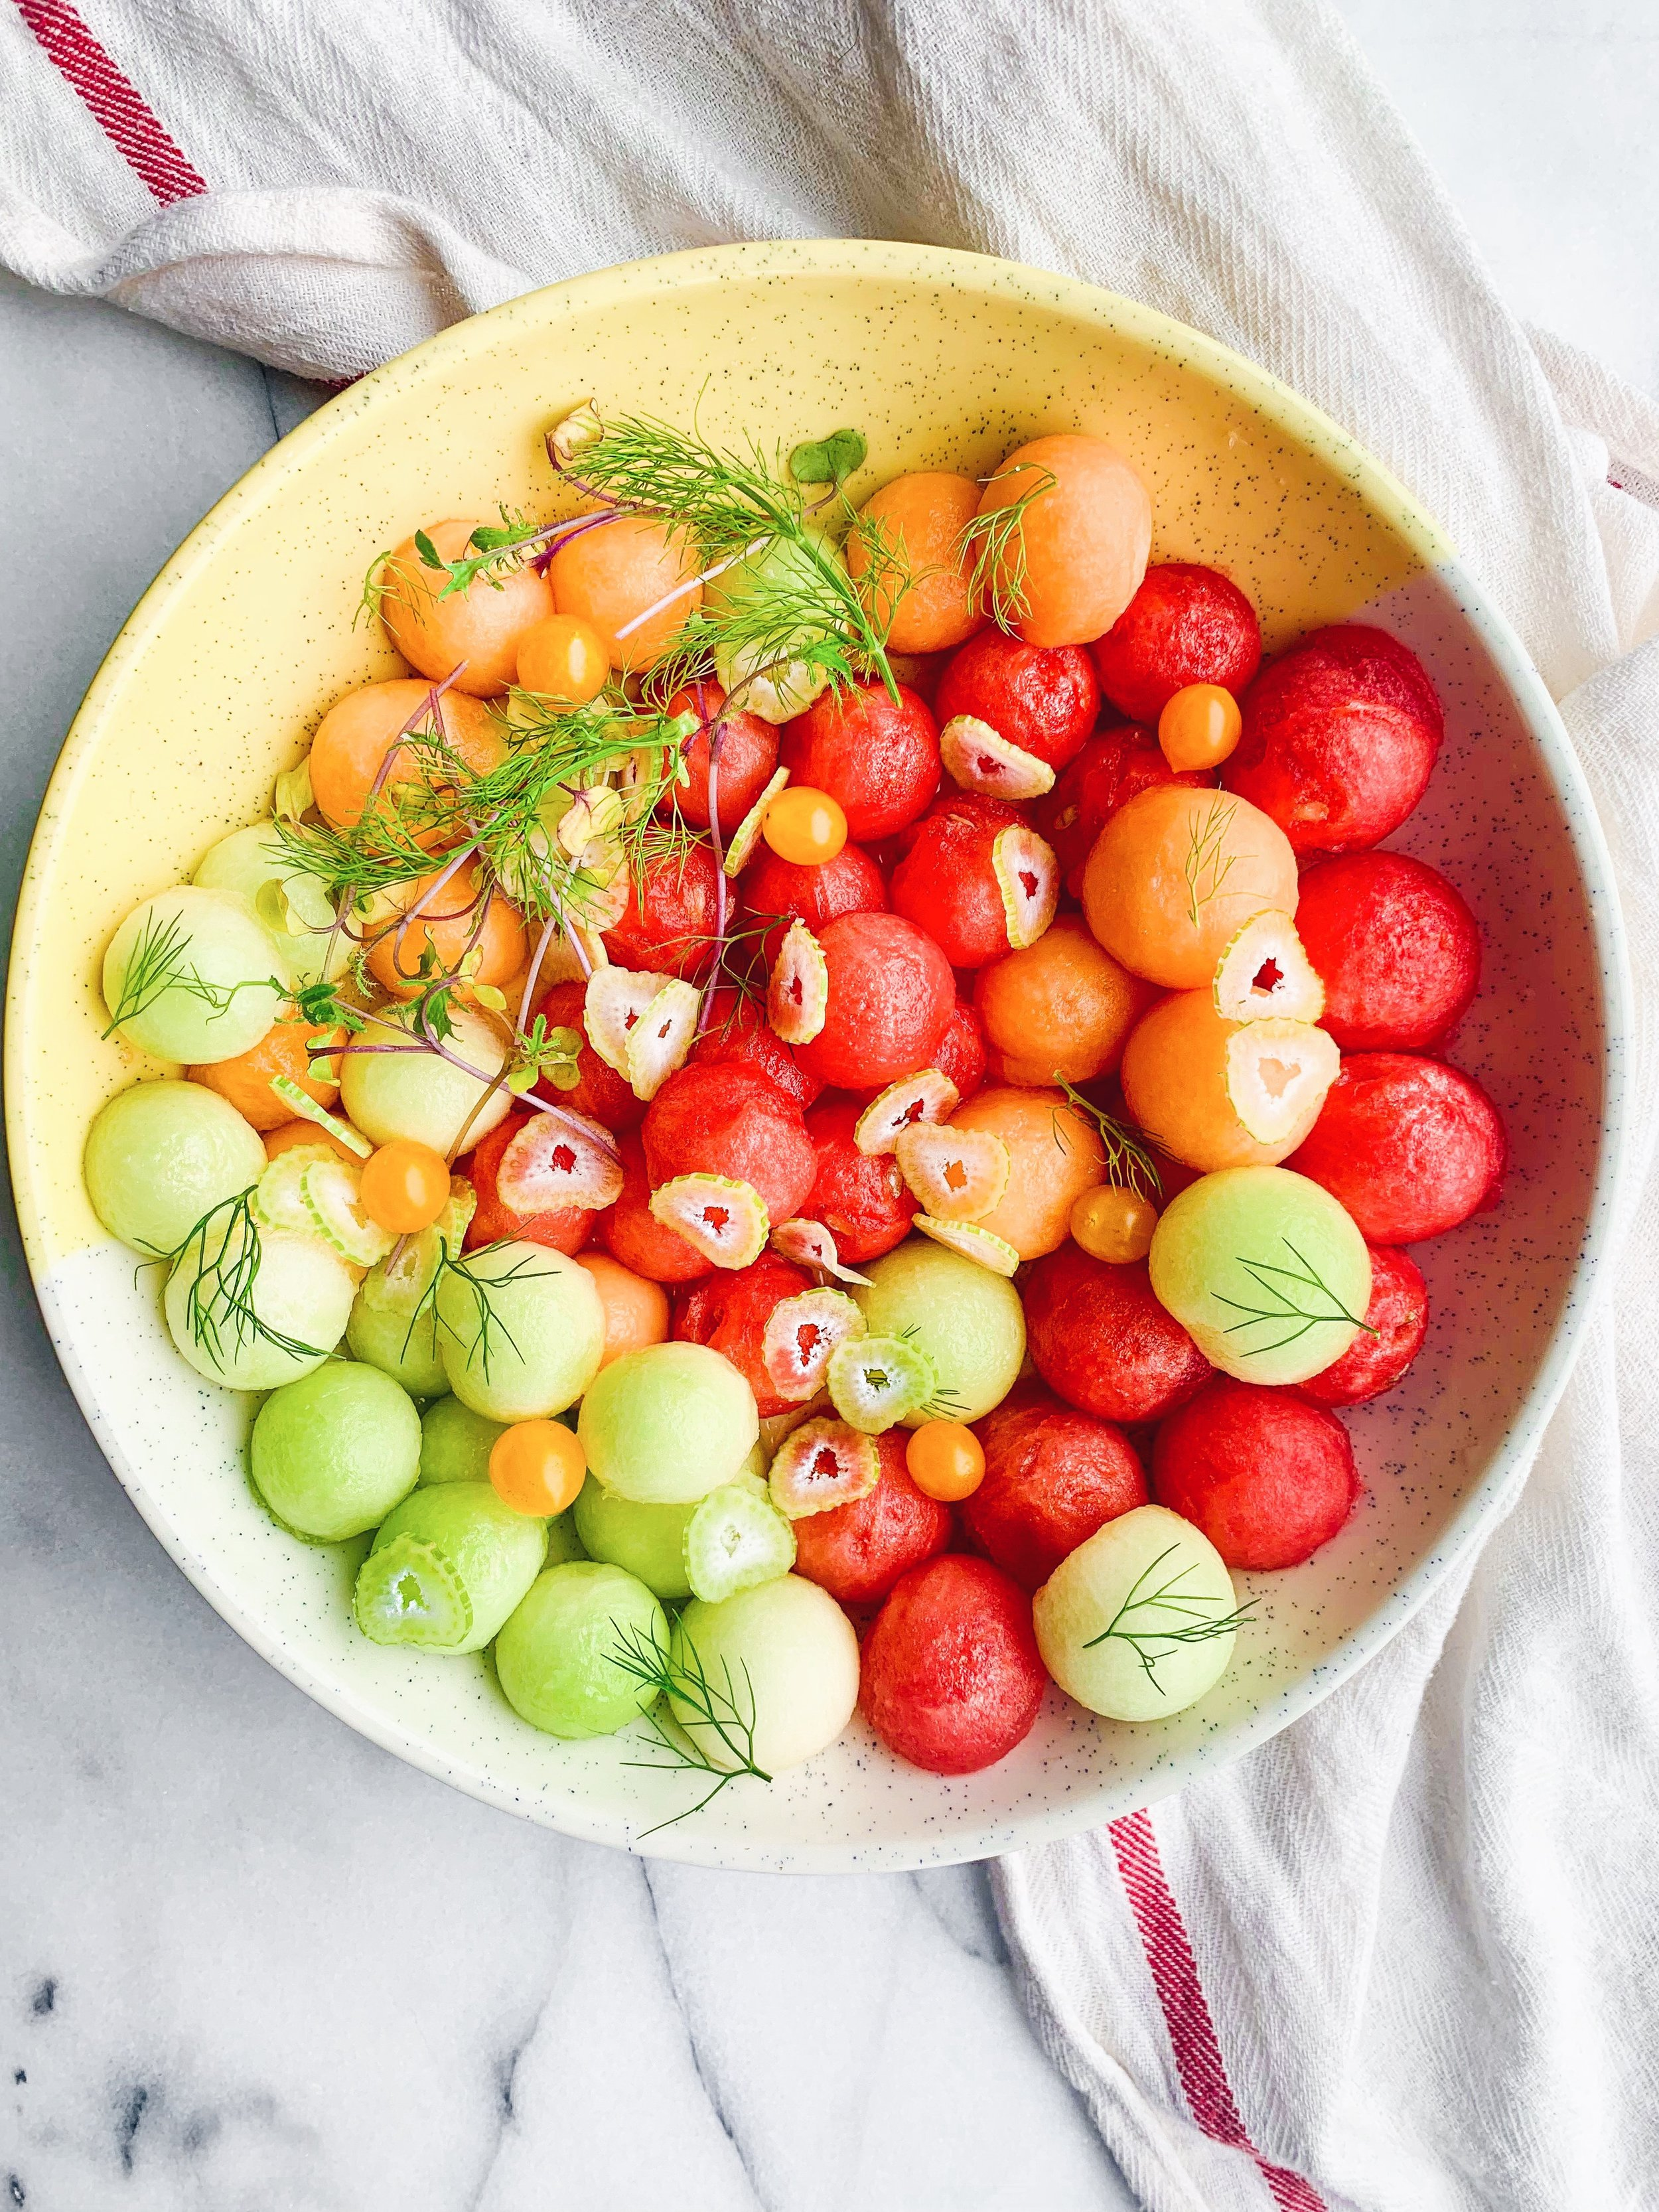 Melon Ball Salad with Fennel and Lime Dressing {vegan gf} - A super simple summer recipe with honeydew melon, cantaloupe, and watermelon! An easy lime dressing is perfect with the sweet fruits! - Foody First - #vegan #glutenfree #watermelonsalad #whole30 #healthyfood #easyrecipes